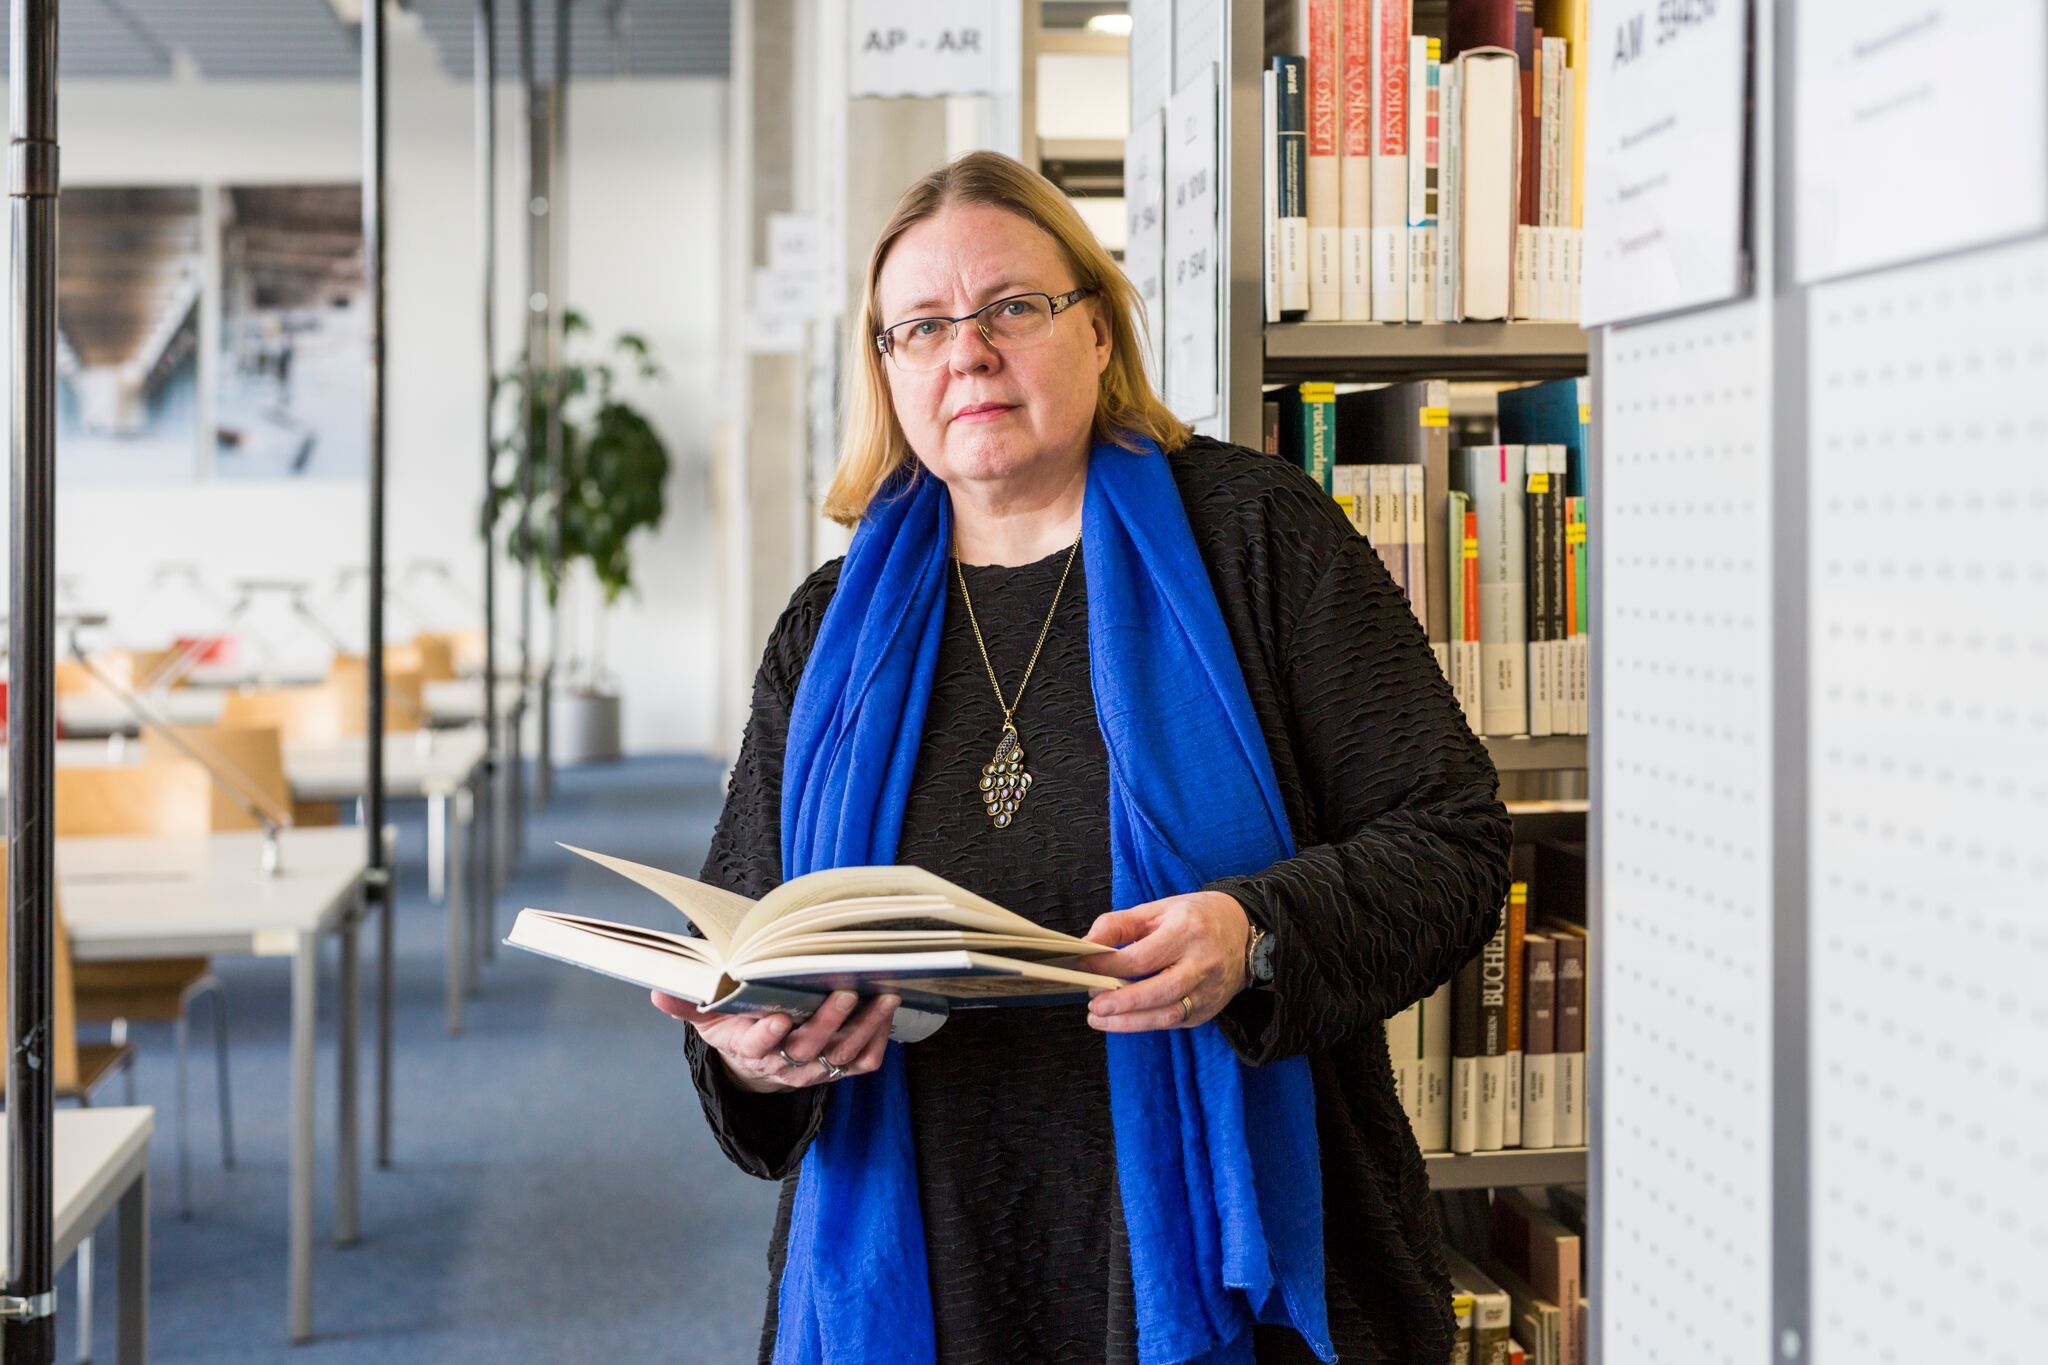 Debora Weber-Wulff in the library with book